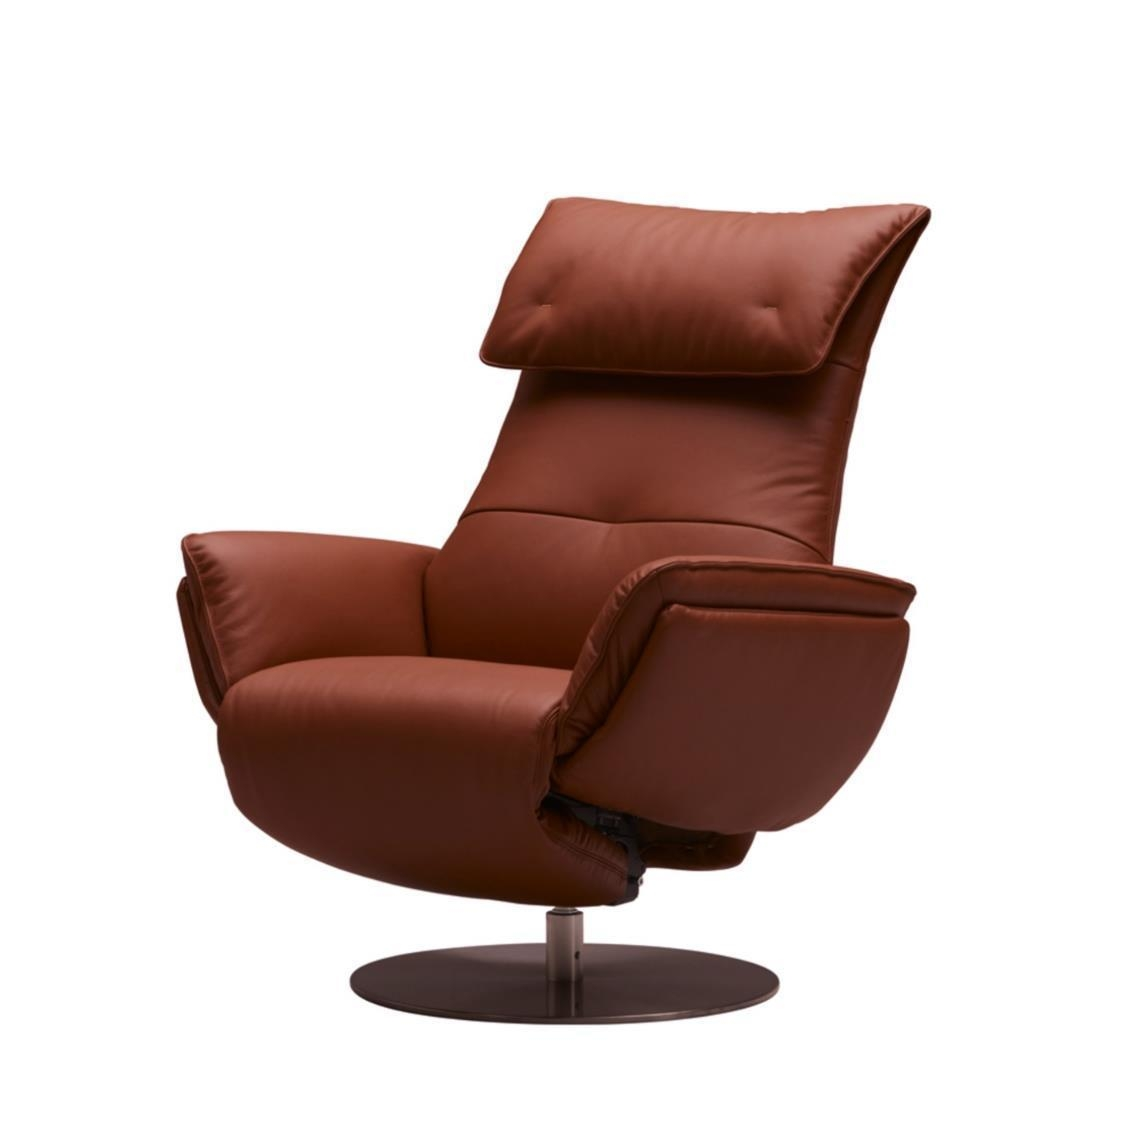 Wolke Chair - Full Leather L663A Terra Cotta